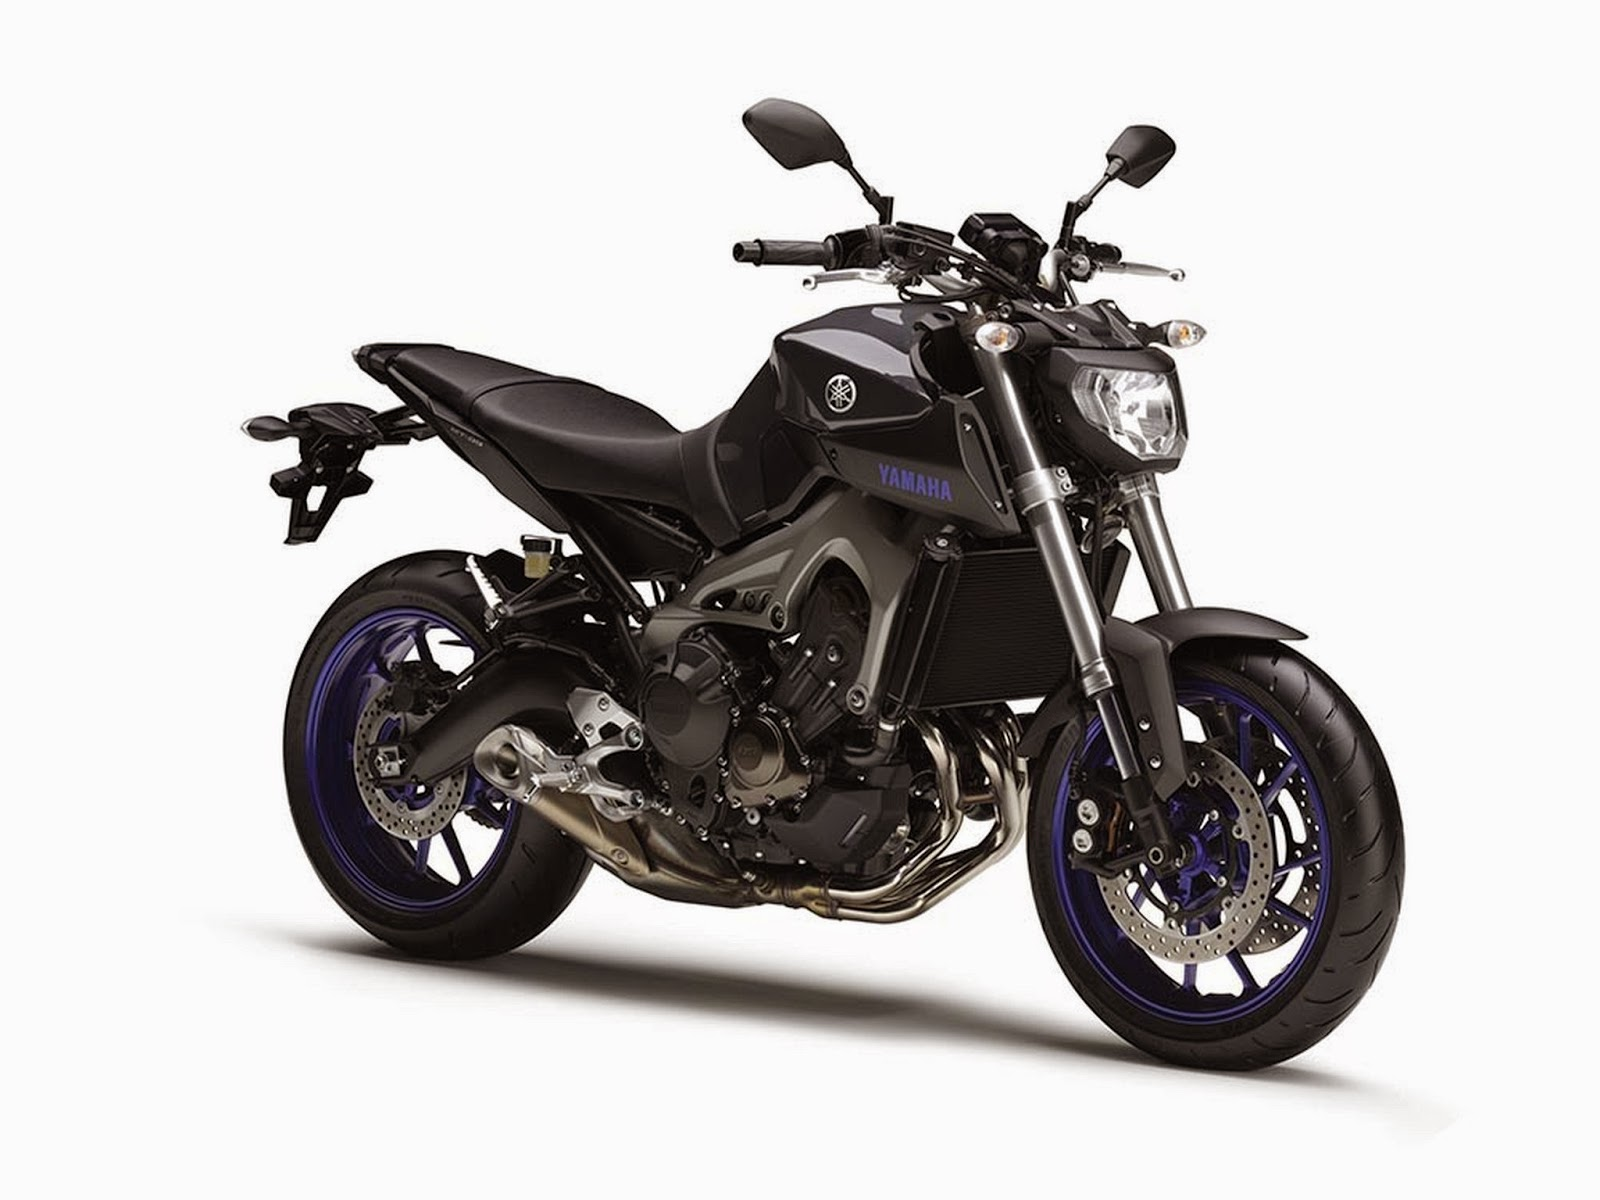 Moge Yamaha MT-09, the Super Tenere and R6 Withdrawn